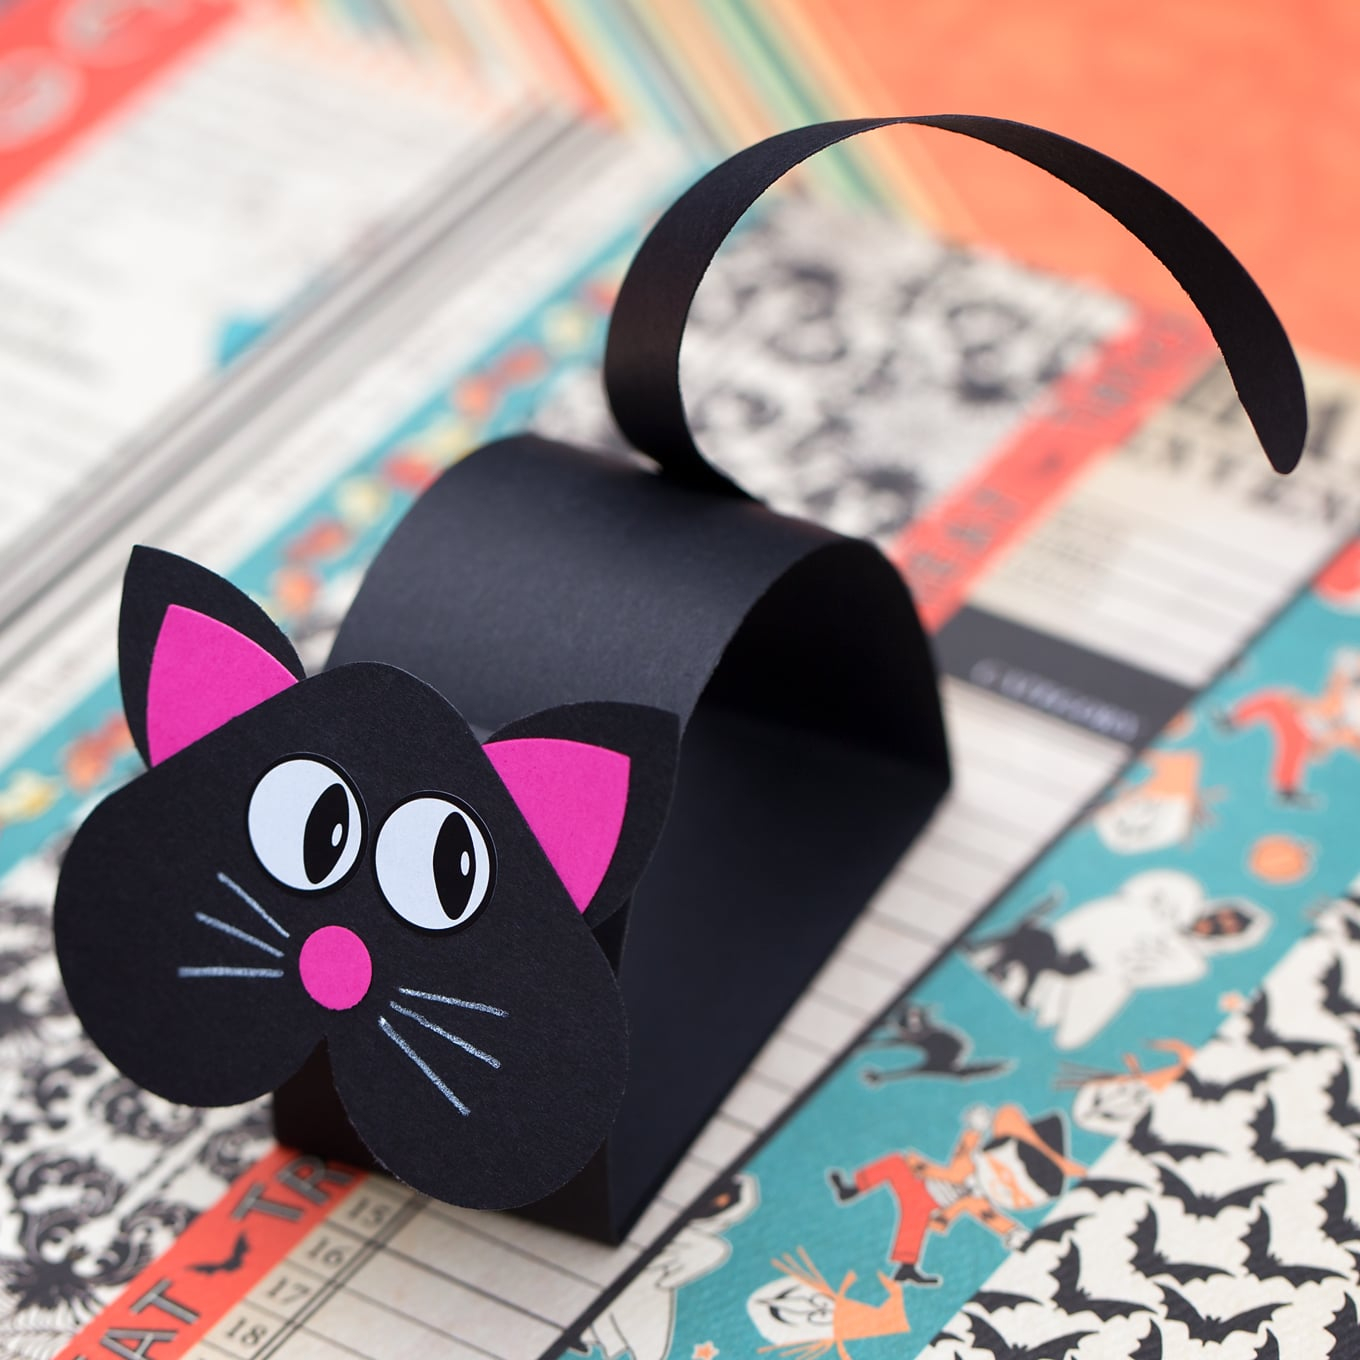 Simple and Cute Construction Paper Crafts for Kids How To Make A Paper Bobble Head Black Cat Craft